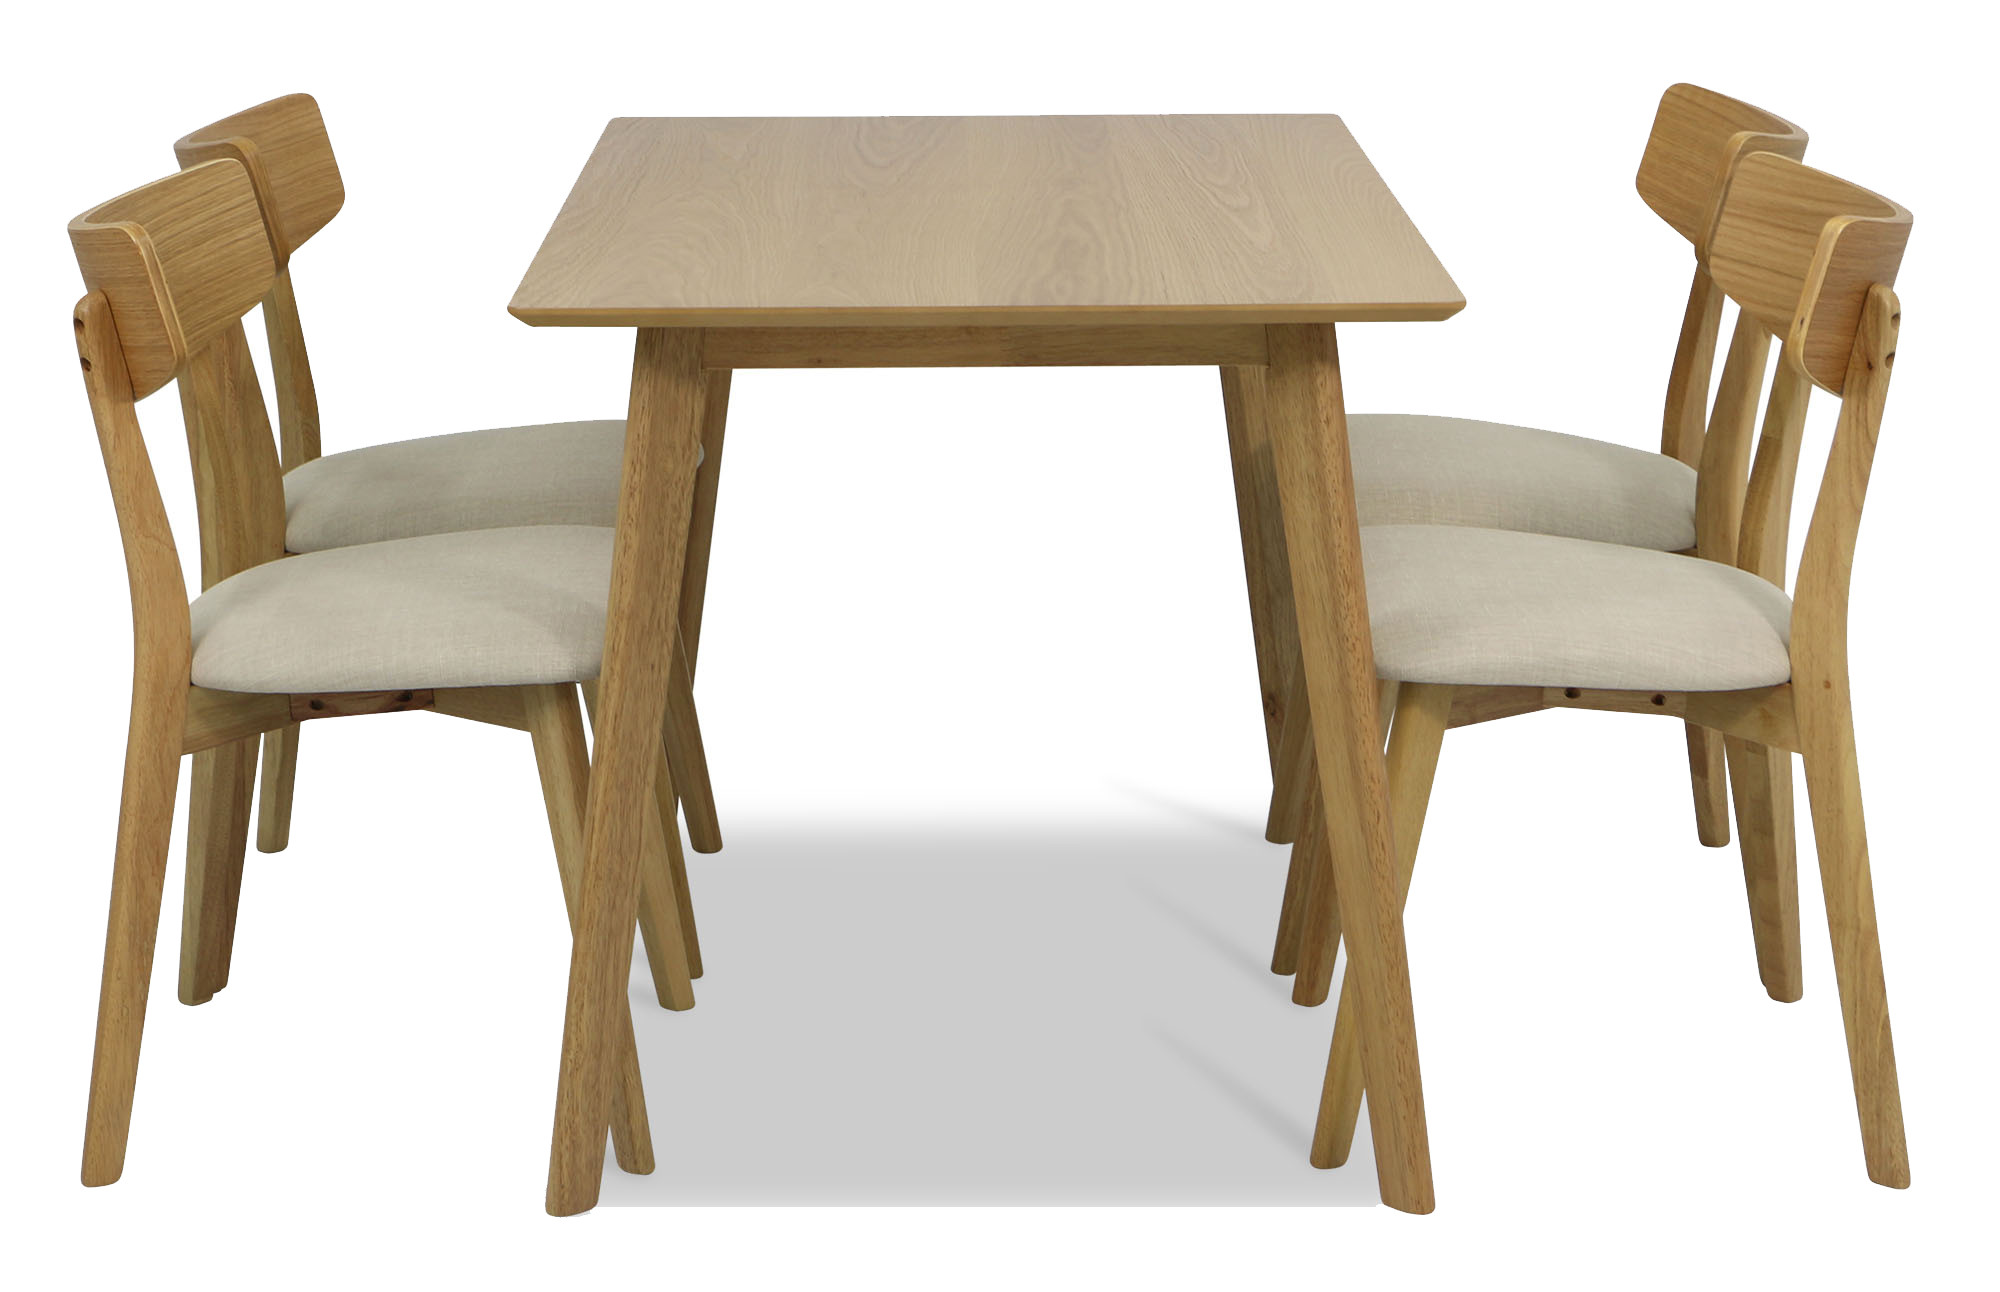 Admirable Ross Dining Table Set A 1 4 Gmtry Best Dining Table And Chair Ideas Images Gmtryco